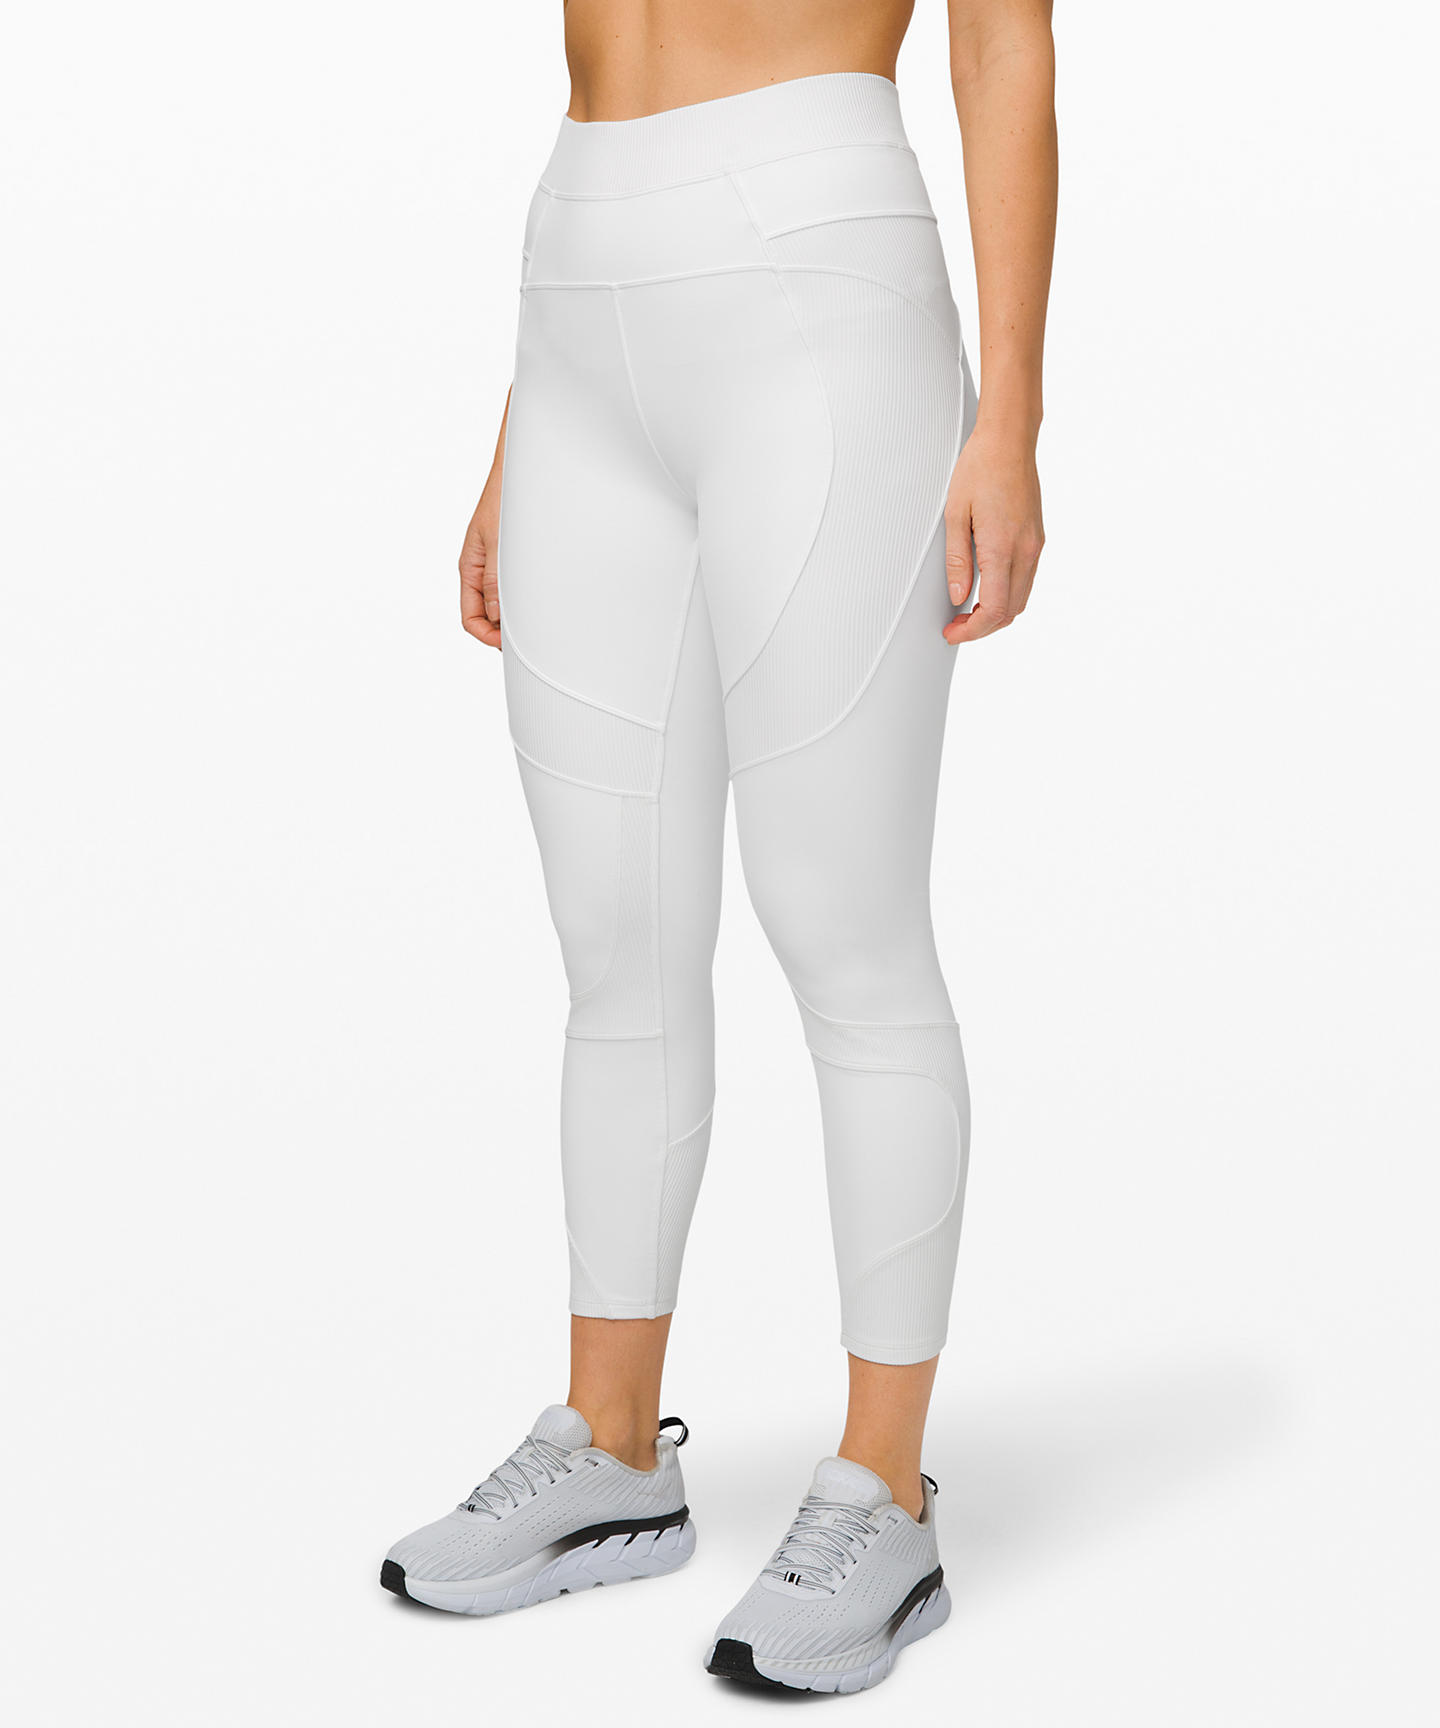 New Ambition Super High-Rise Tight